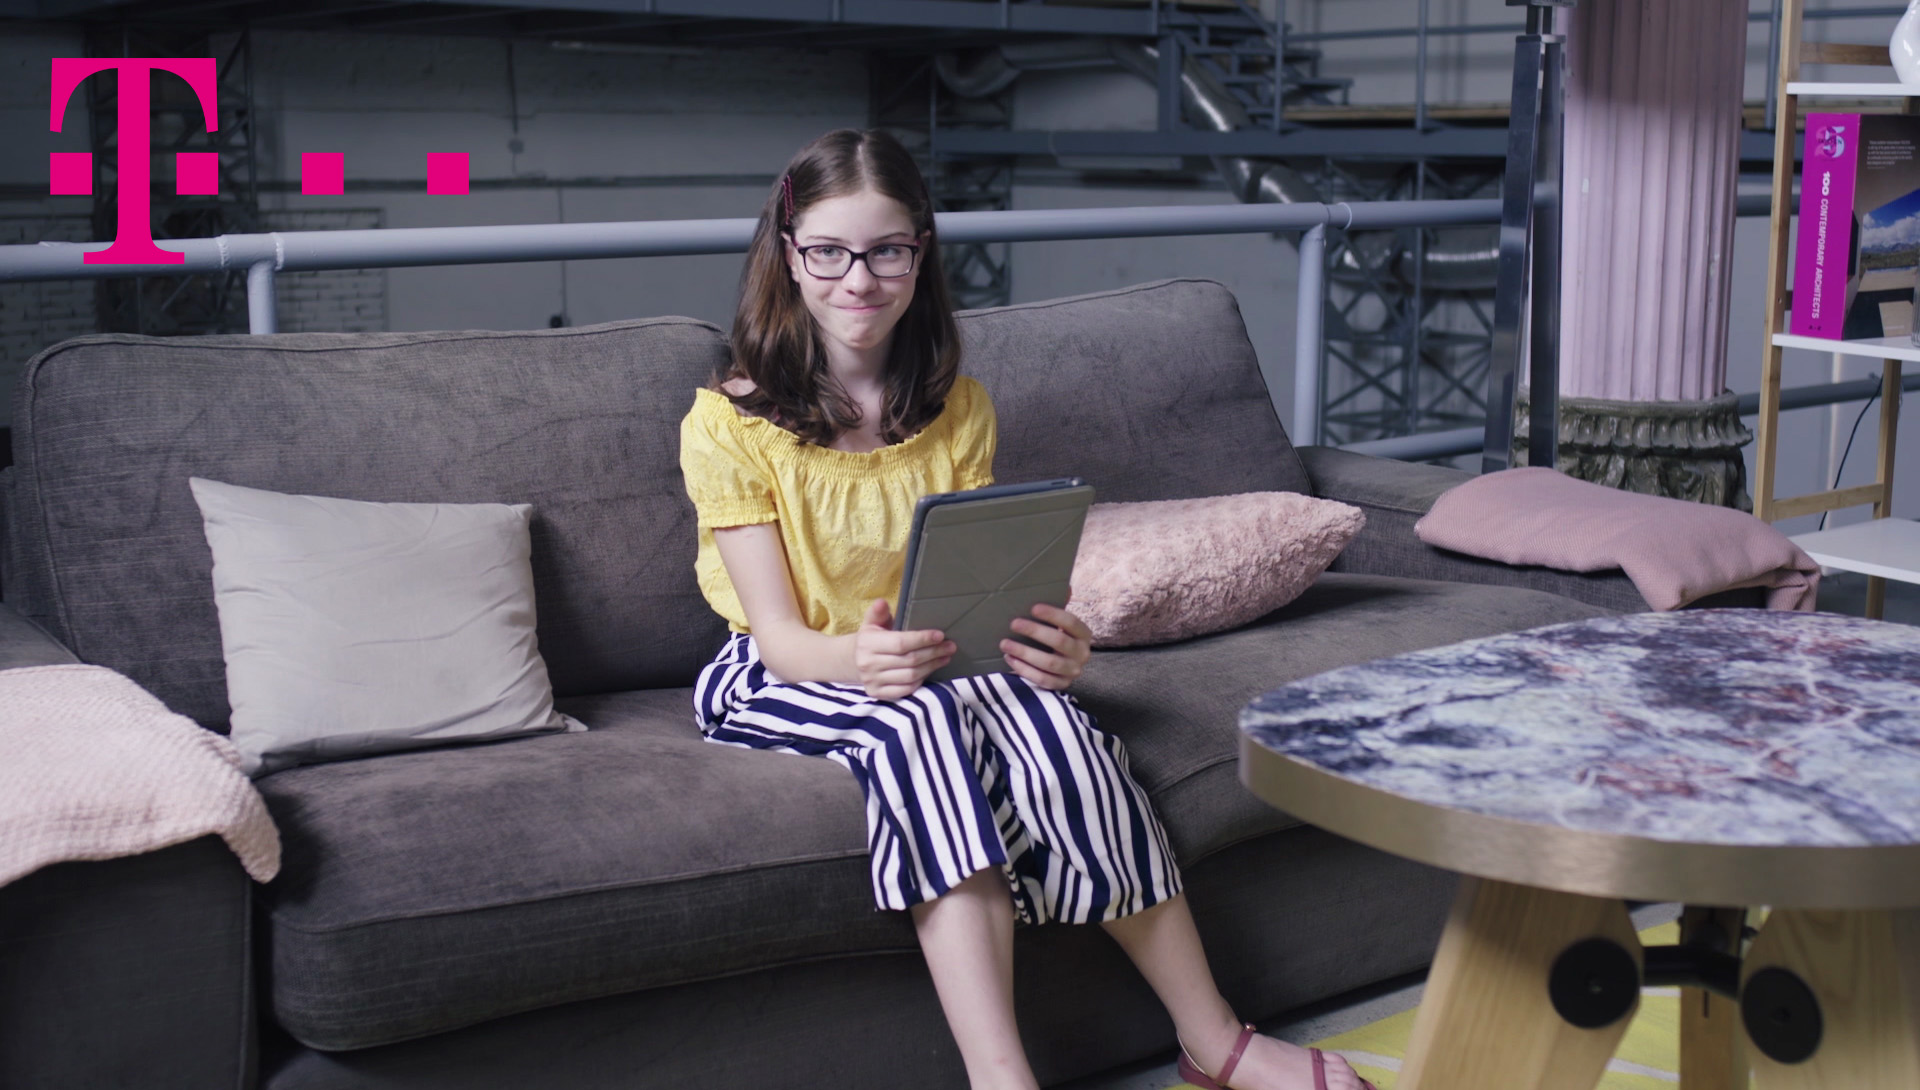 TELEKOM 'father's day online movie'